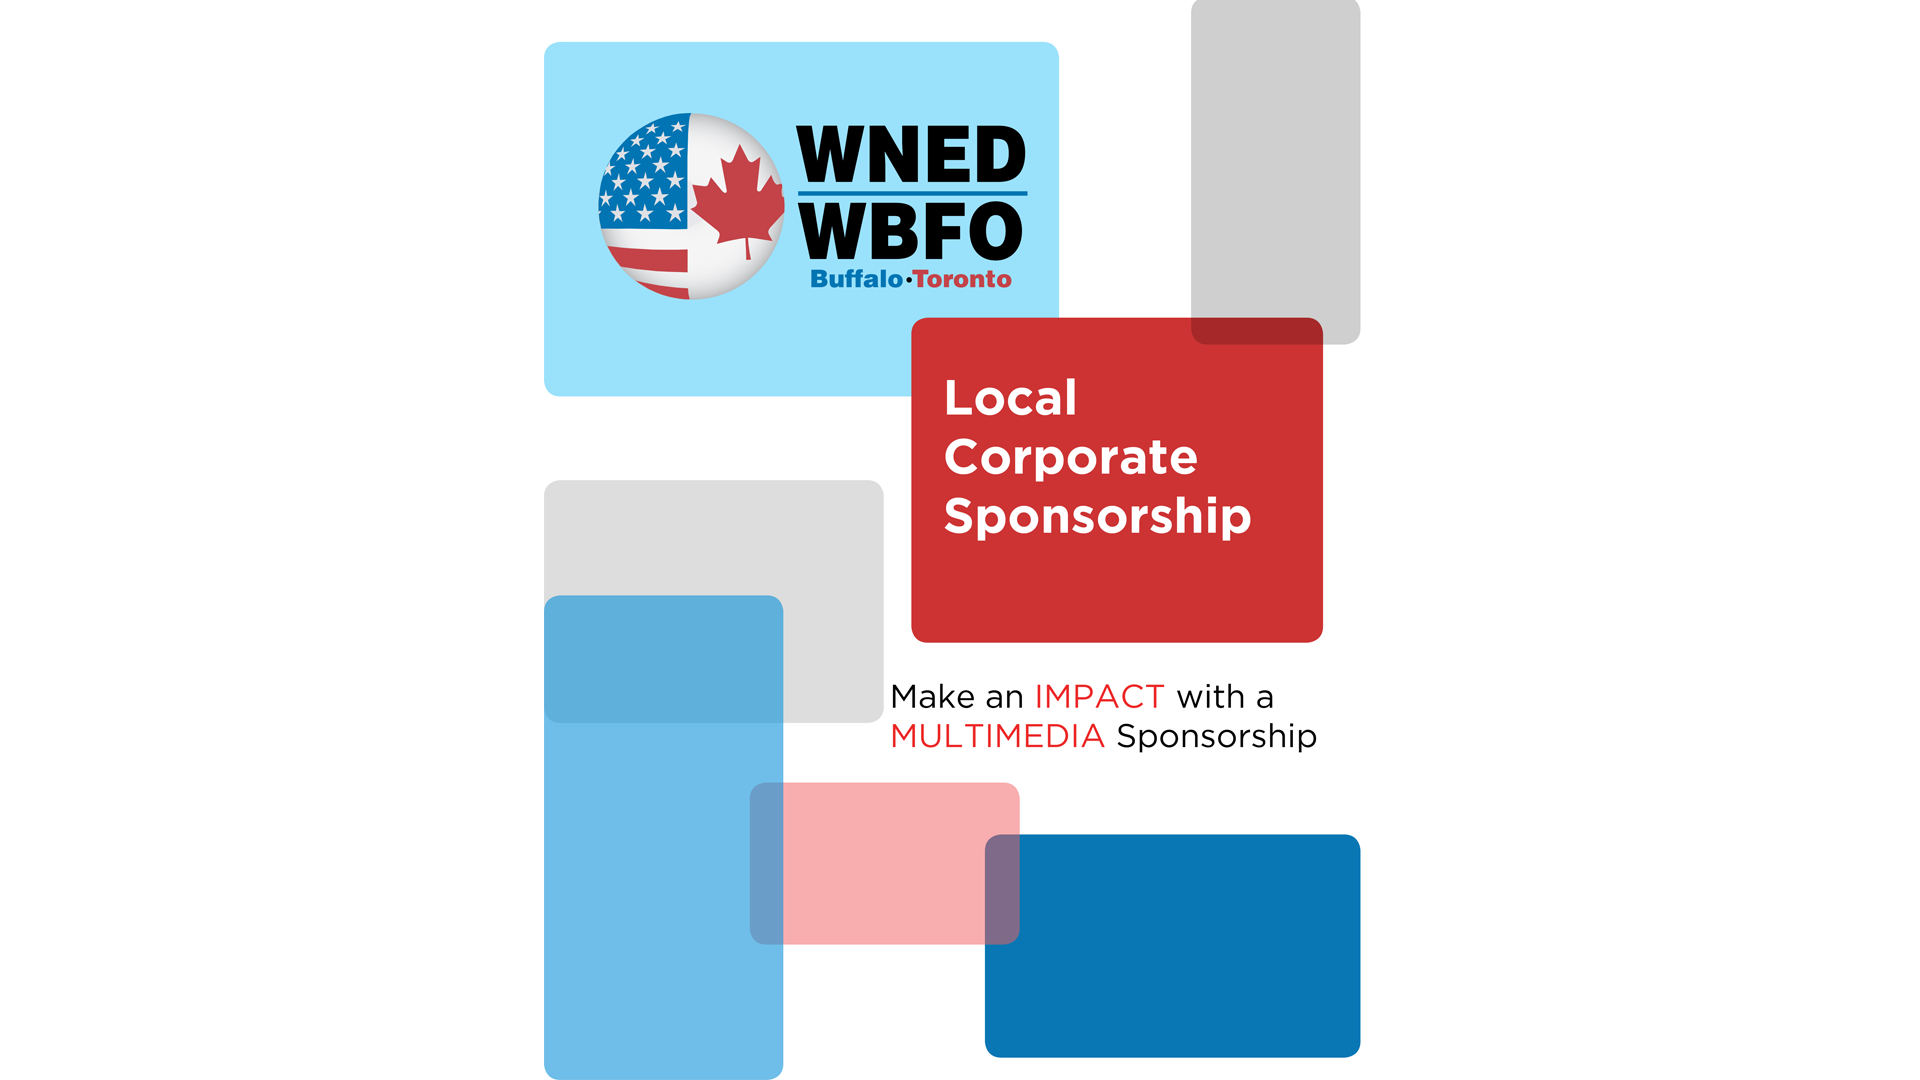 Download the complete WNED | WBFO Media Kit